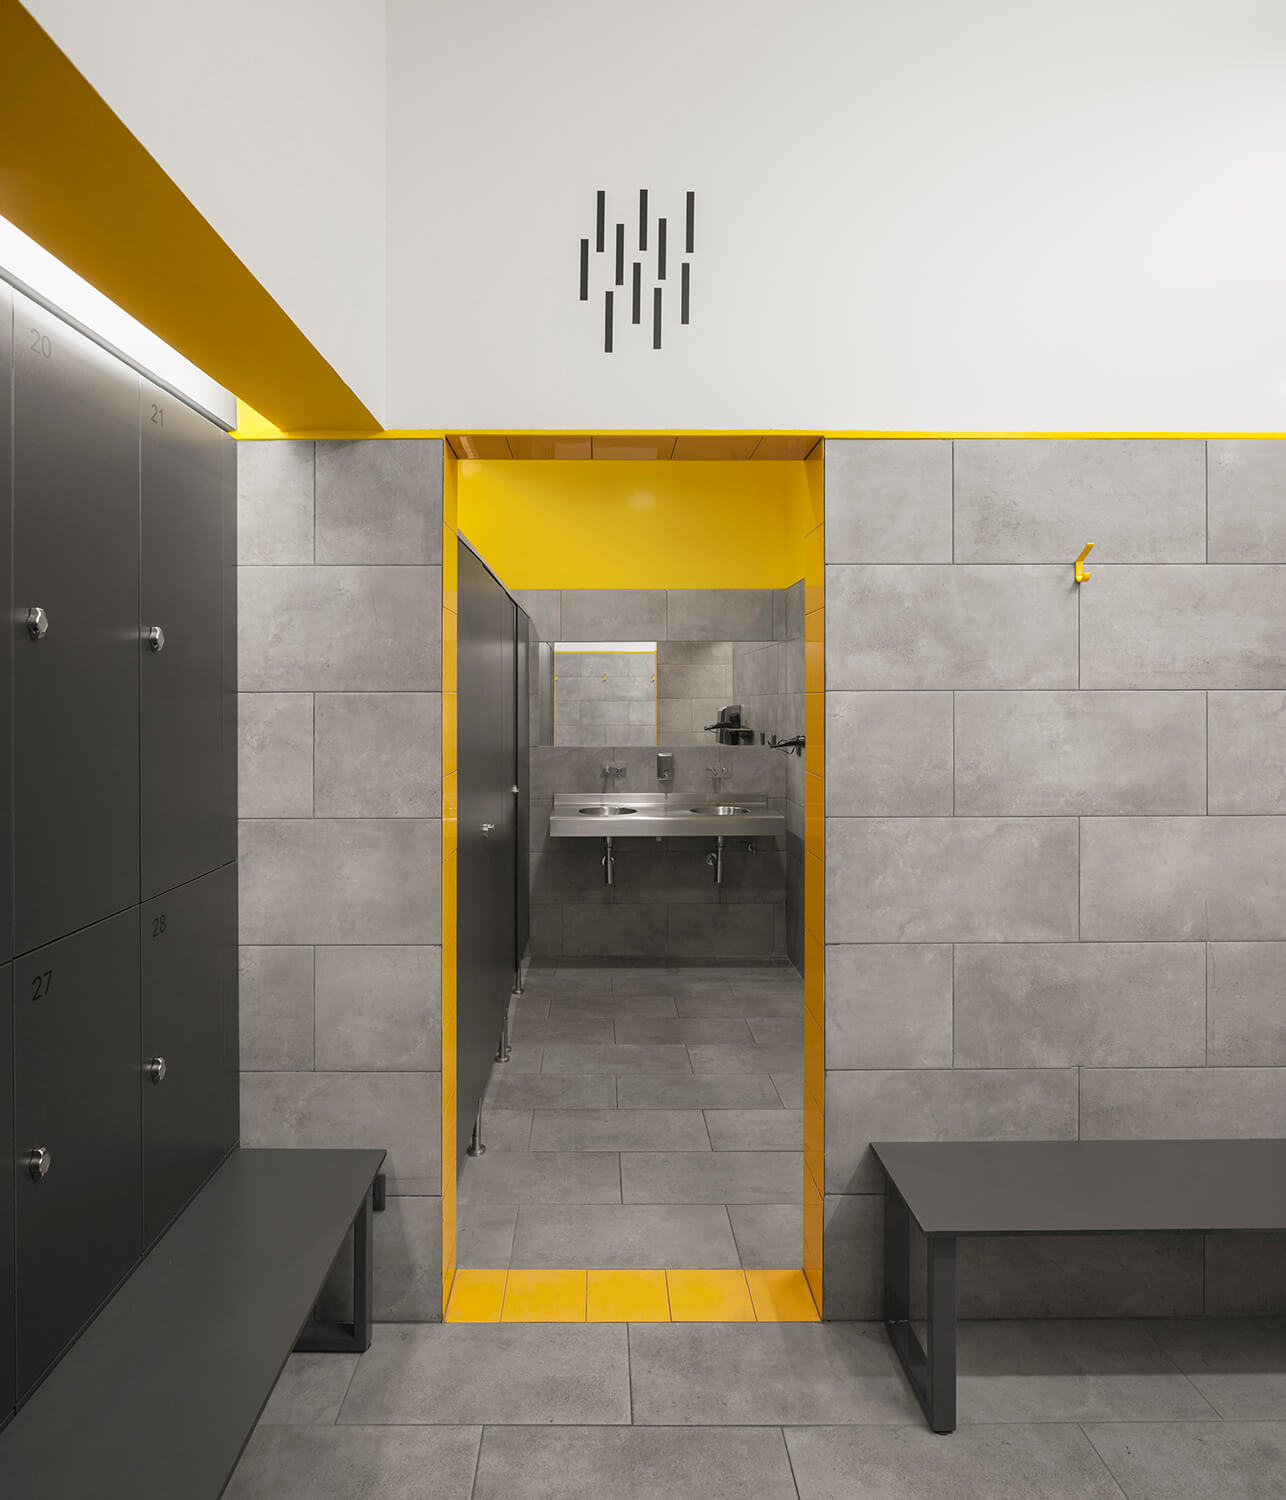 View of the entrance to the shower room and basin area estudio